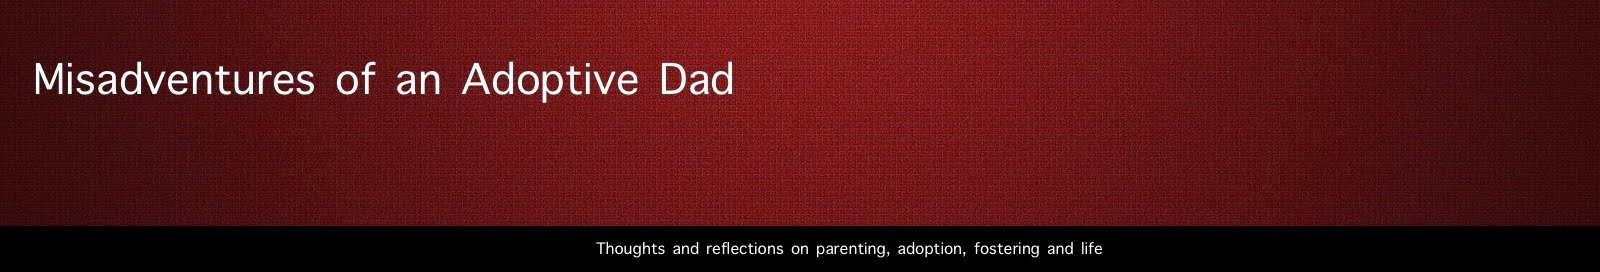 Misadventures of an Adoptive Dad